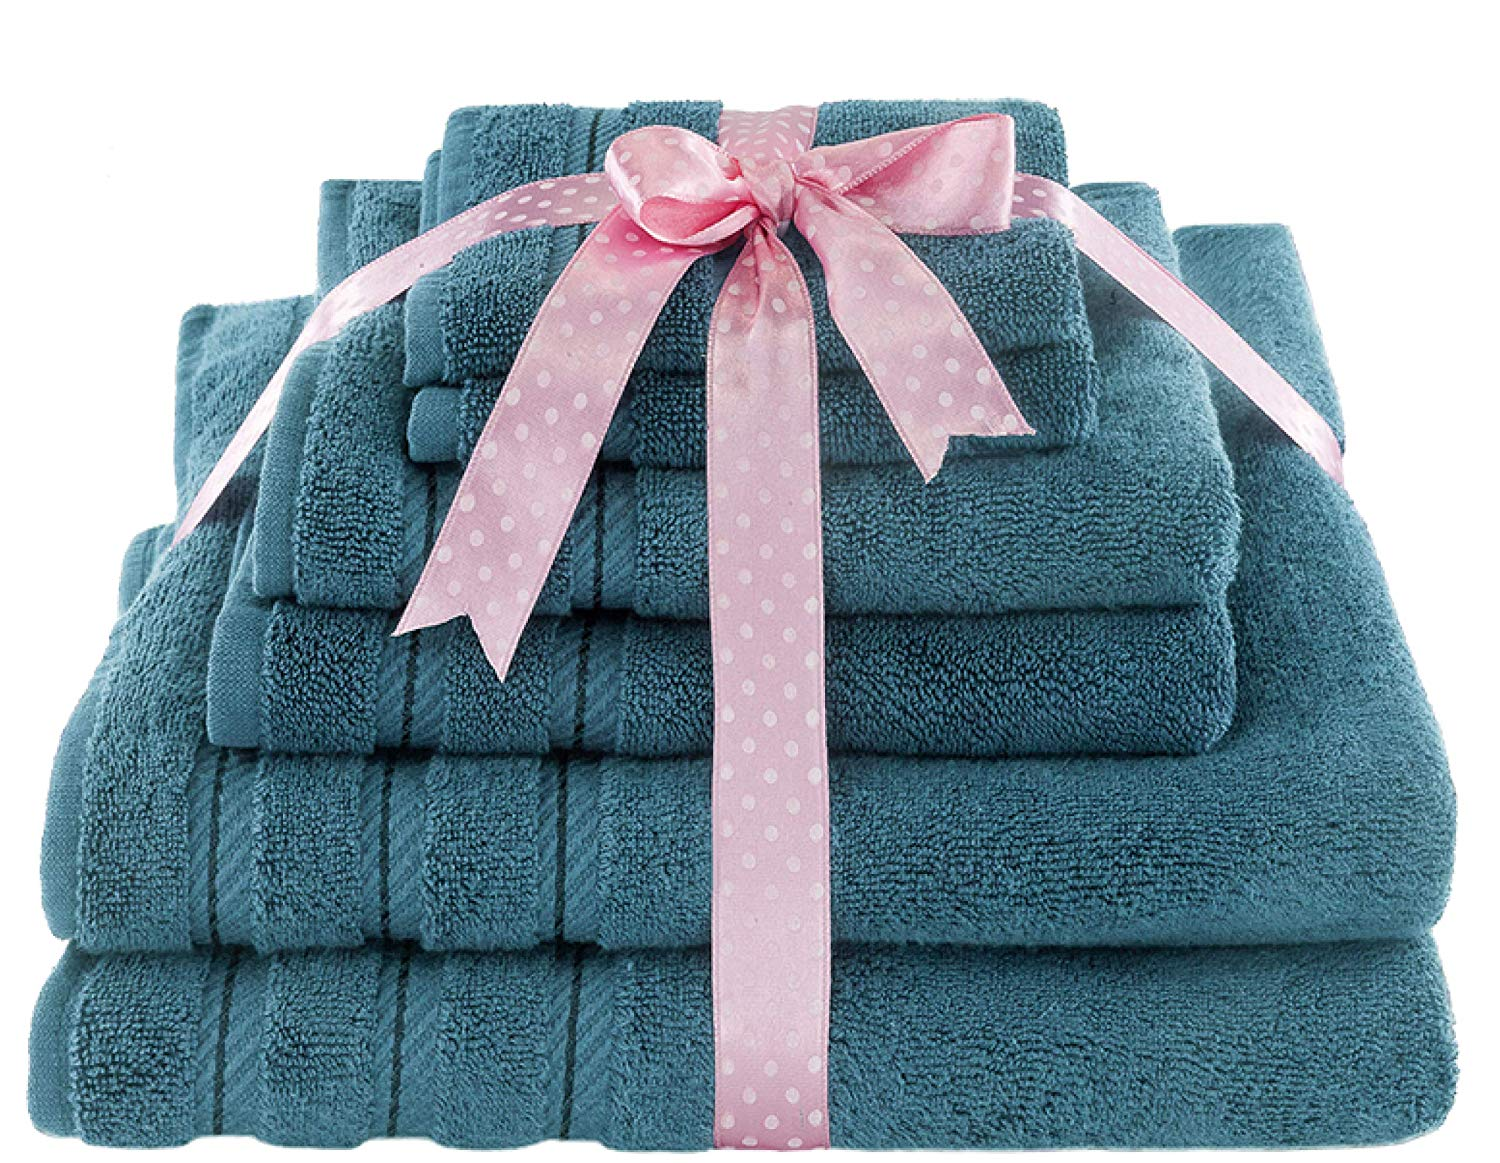 Soft Absorbent Luxury Turkish Towel Set